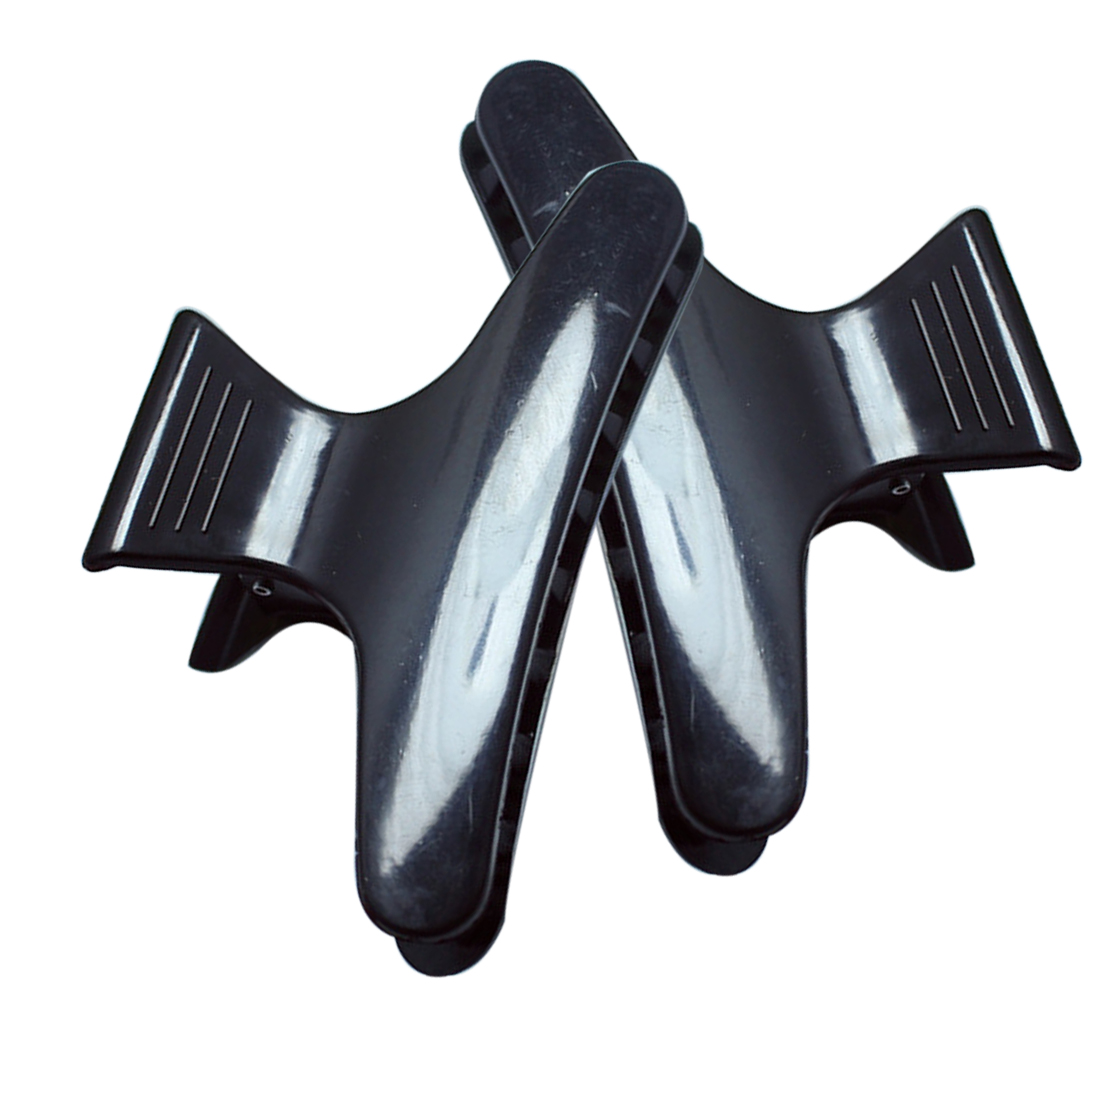 Styling Tools Salon Hairdressing Hairdresser Black Hair Clamps Clips Claw Section Butterfly